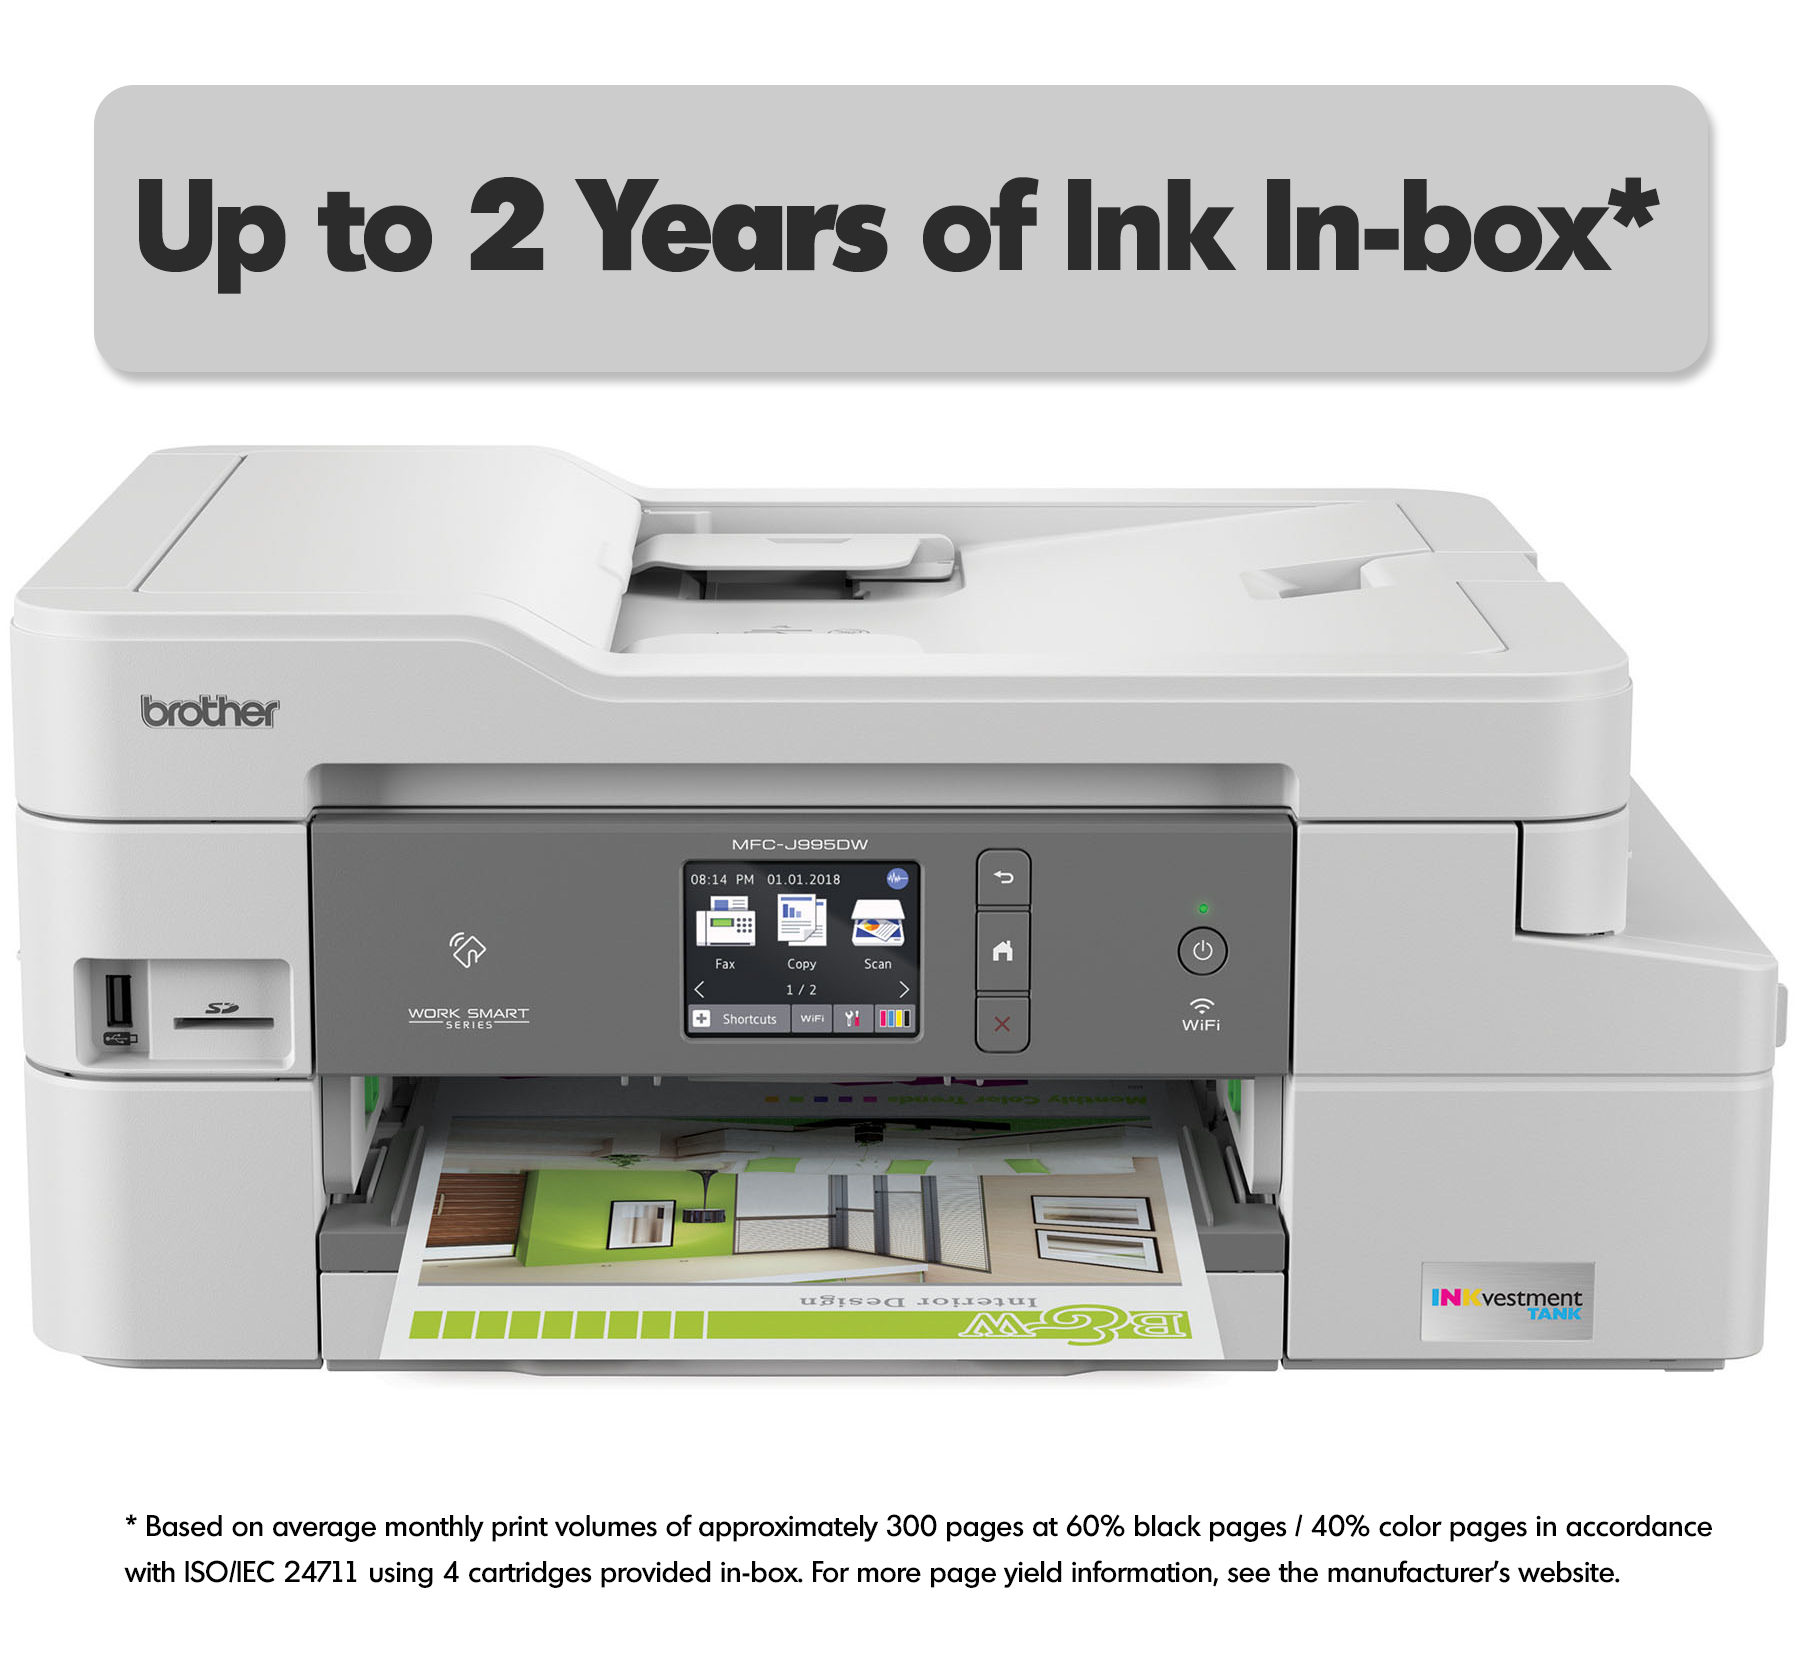 Brother MFC-J995DW XL INKvestment Tank Color Inkjet All-in-One Printer with Up to 2-Years of Ink In-box